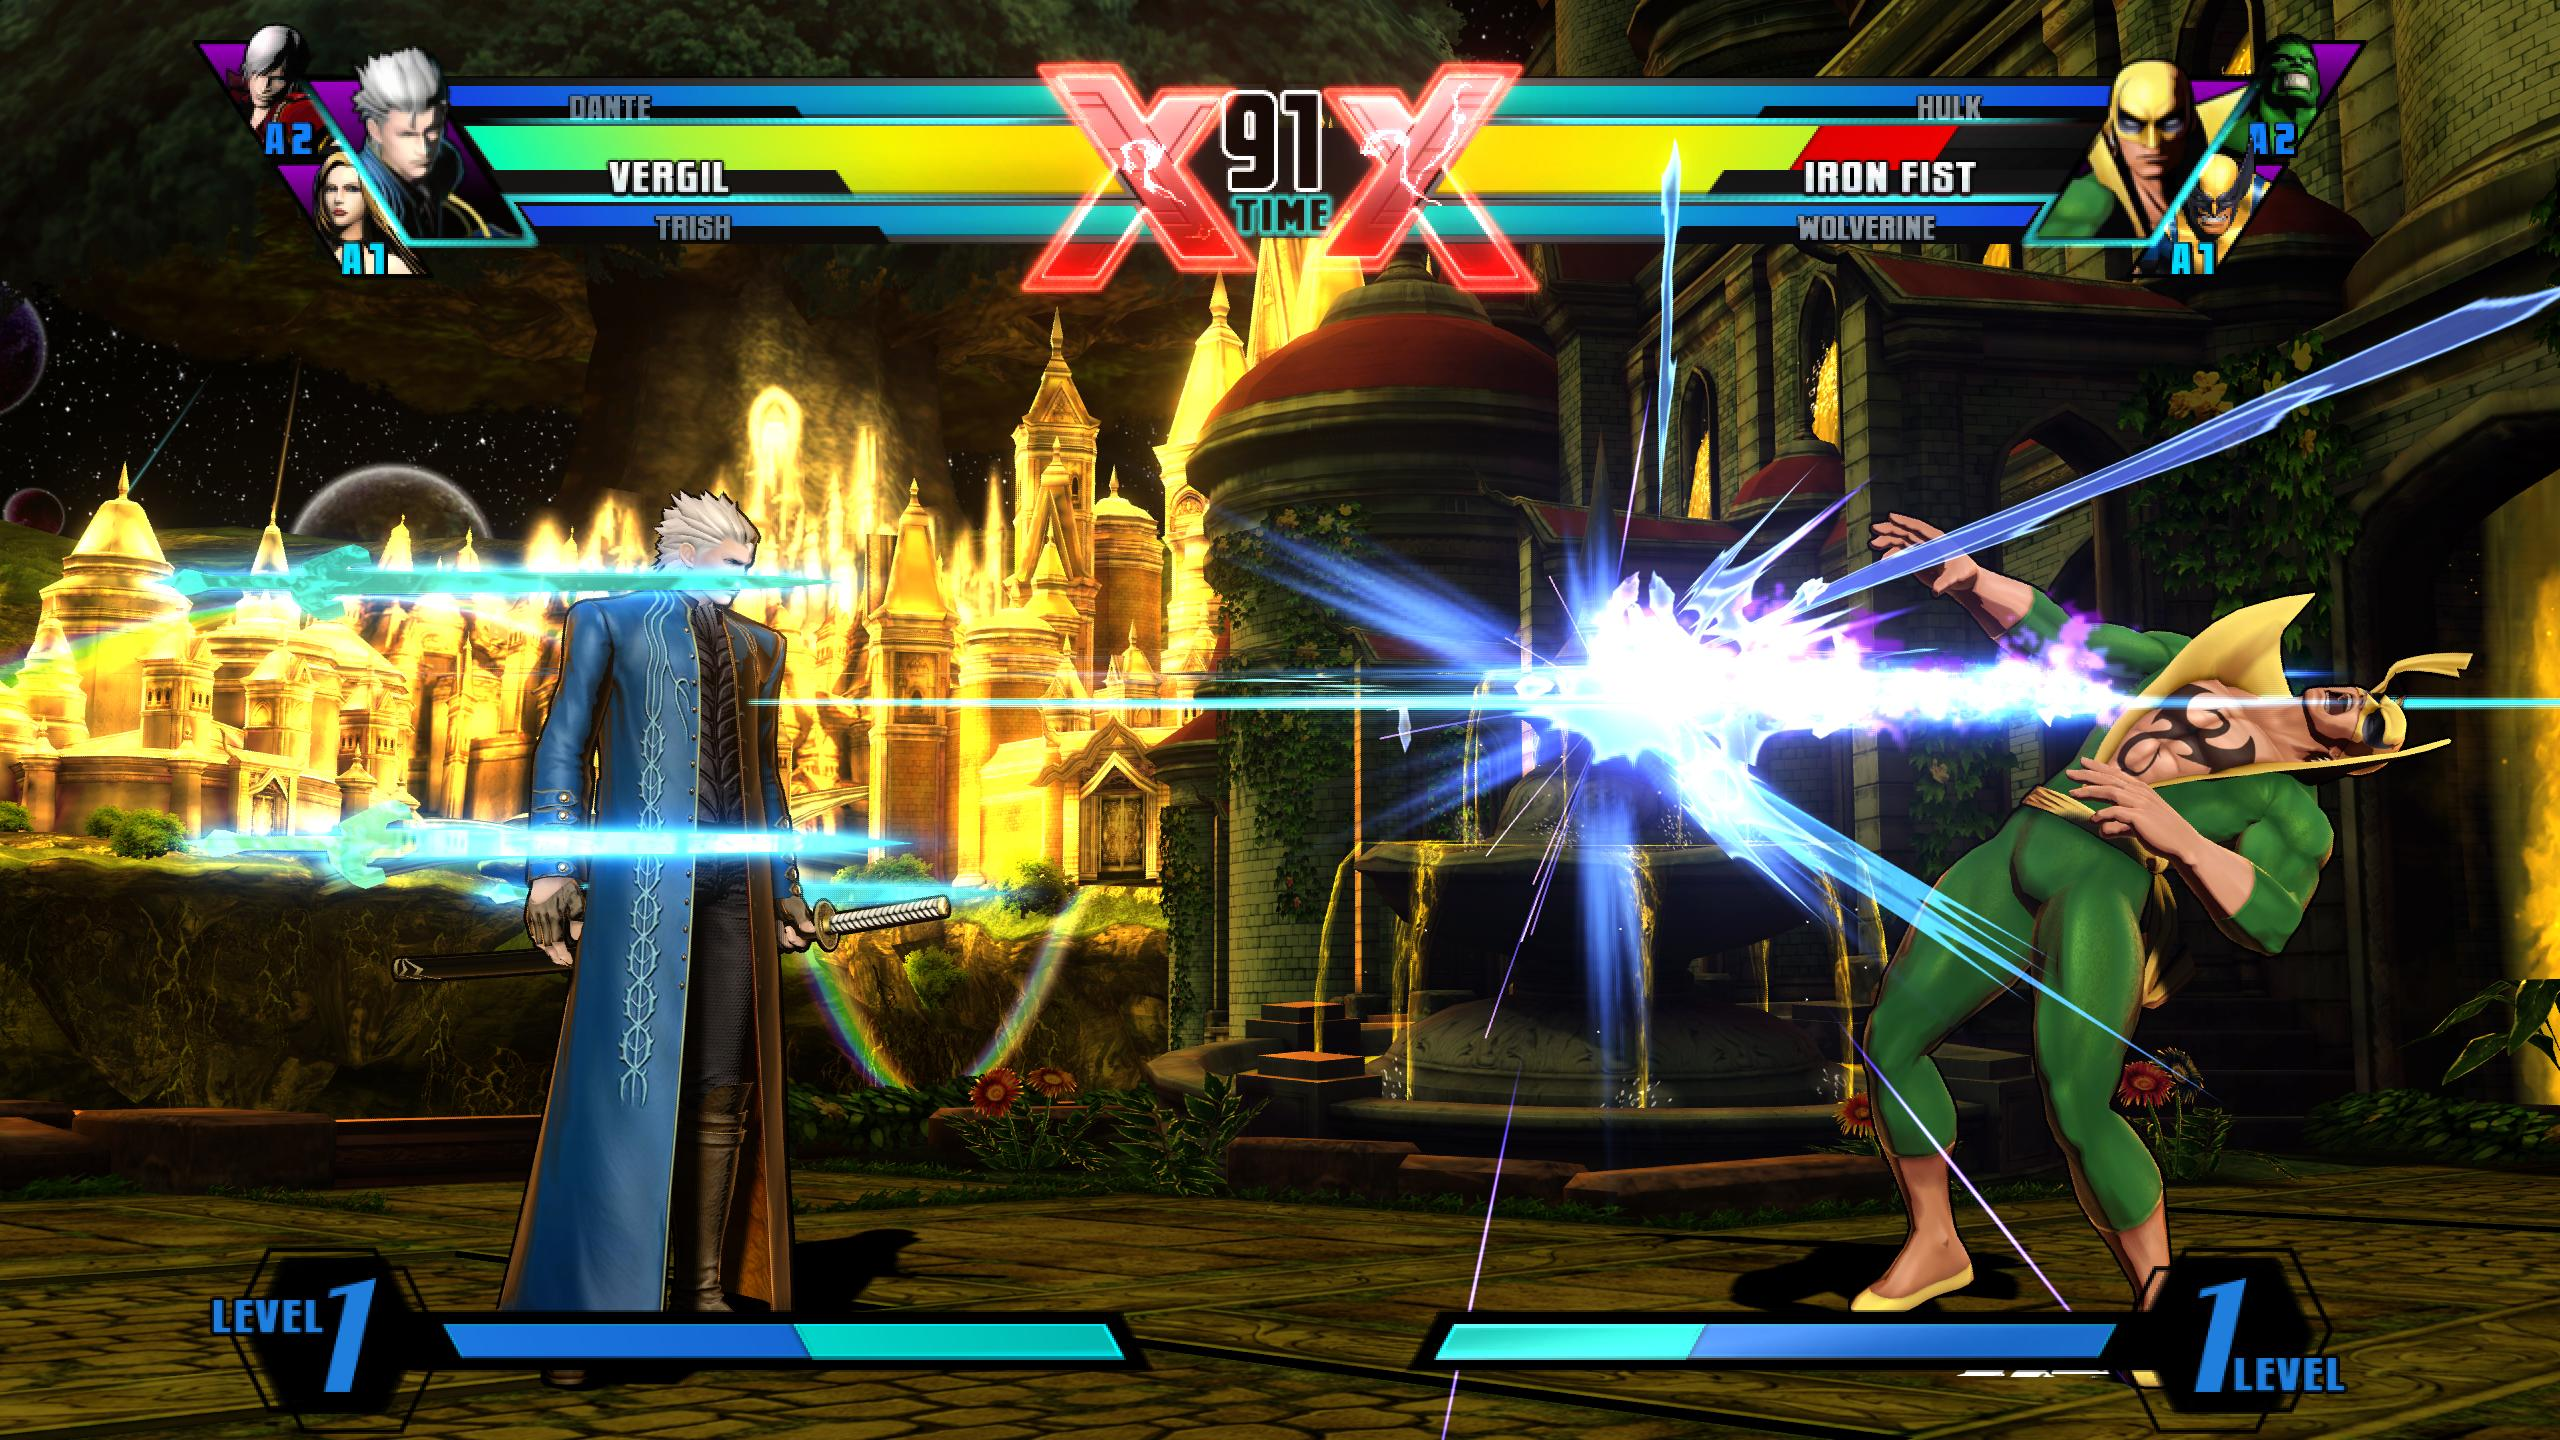 Vergil dans Ultimate Marvel vs. Capcom 3 6150582571_177ec59617_o